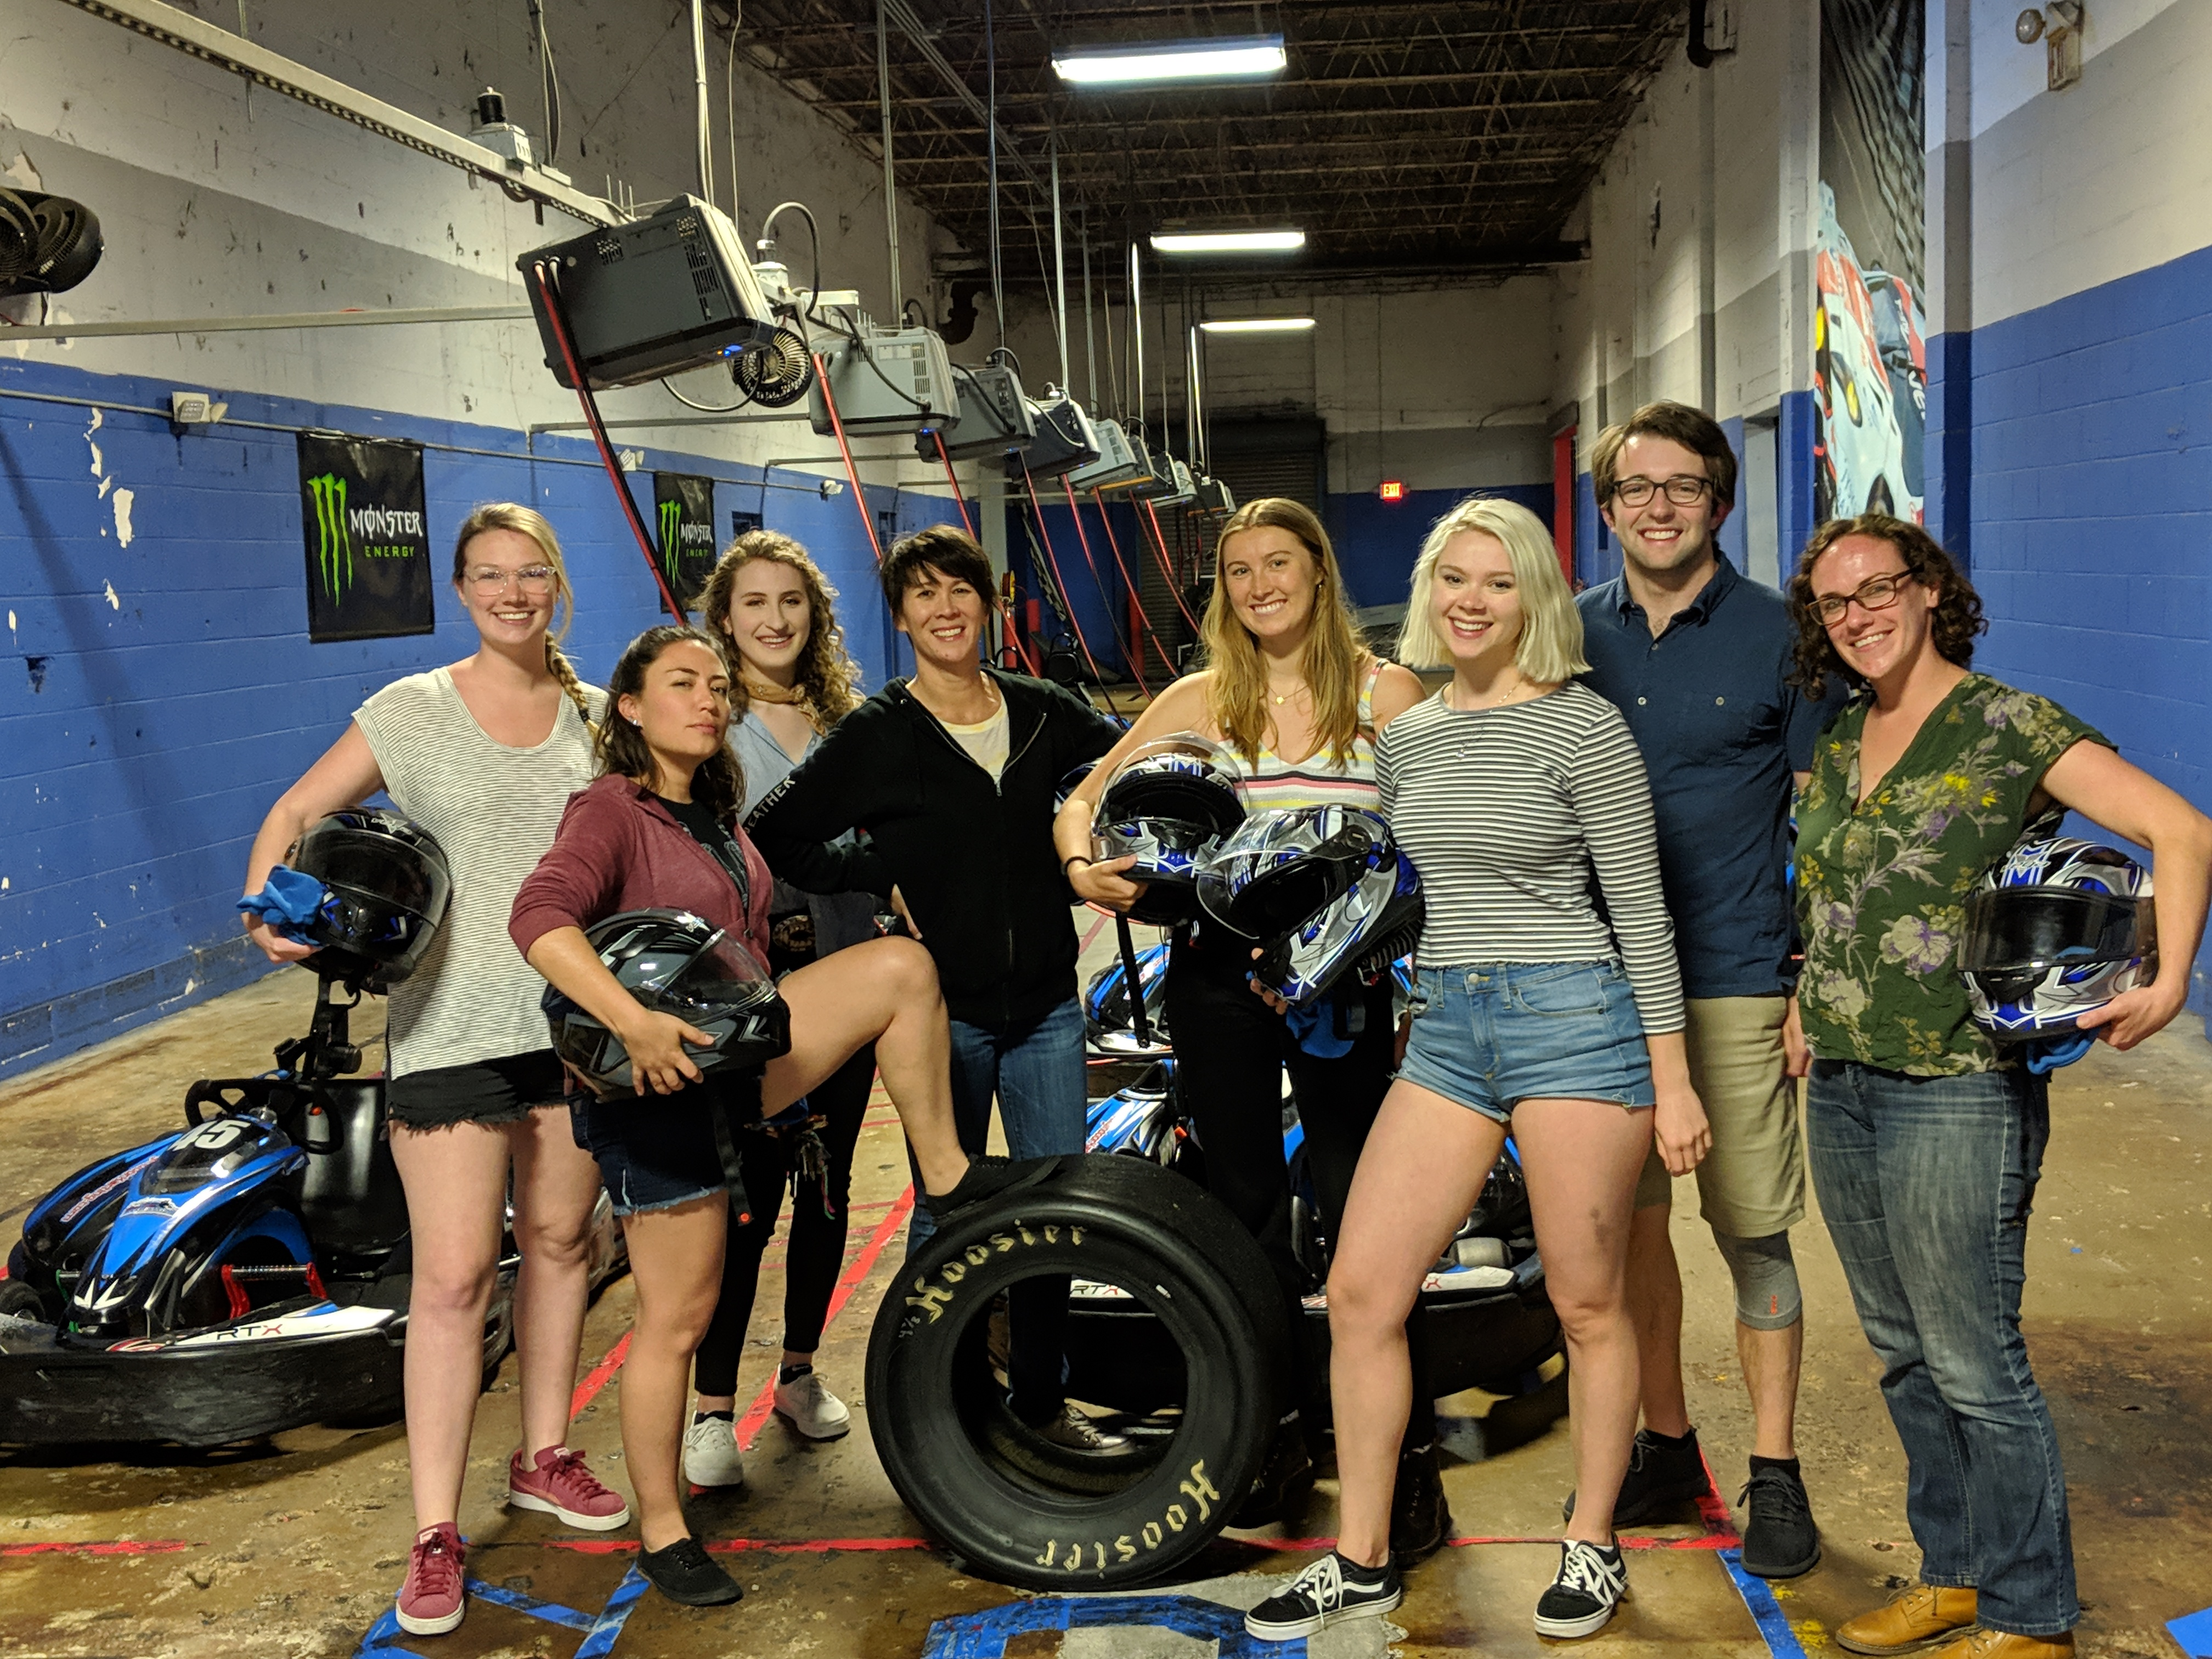 A student, Keitlyn, another student, Tiffiny, Maya, Anna, Tom, and another student who help in the lab at an indoor GoKarting place. They are all smiling into the camera. The ground is concrete and the walls are made of cement bricks. The wall is painted blue most of the way up and then white the last of the way. There are two blue GoKarts behind the group. The first student, Keitly, Maya, Anna, and the student on the far right are holding blue and black helemets. The first student is wearing a gray tshirt, black shorts, red shoes, and glasses. Her blonde hair is in a braid. Keitlyn is wearing a red jacket, jeans shorts, and black shoes. Her foot is up on a black tire. She has shoulder length brown hair. The next person is wearing a blue shirt and has curly blonde hair. Tiffiny is wearing a black jacket, white undershirt, and jeans. She has short brown hair. Maya is wearing a white tanktop and black pants. She has long blonde hair. Anna is wearing a longsleeved gray shirt, jean shorts, and black and white shoes. She has bleach blonde cin length hair. Tom is wearing a blue polo, khaki pants, black shoes, and glass. He has short brown hair. The last student is wearing a green shirt with gray and light green designs on it, jeans, brown shoes, and glasses.